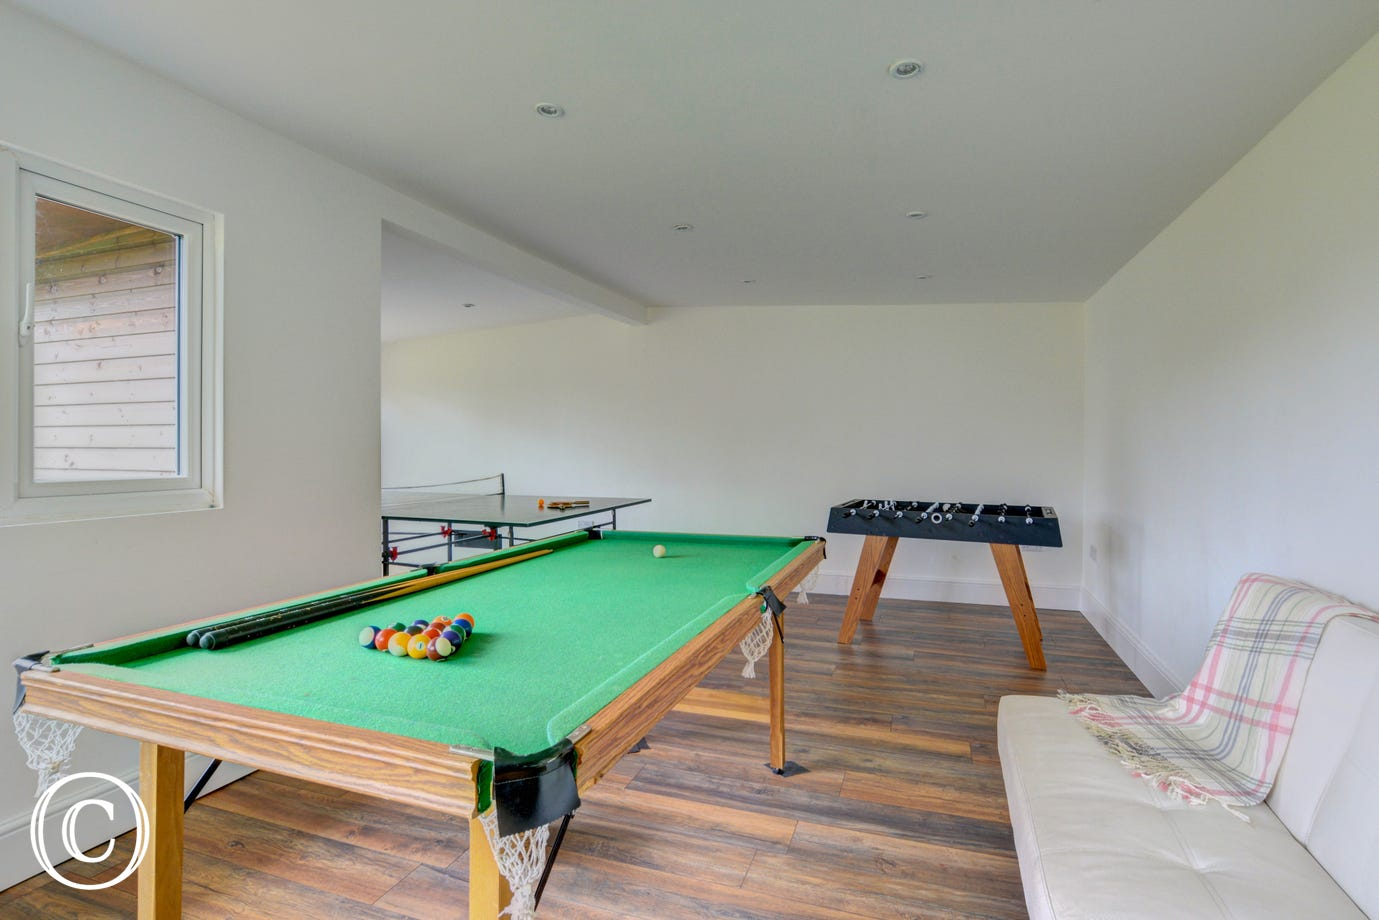 Games Room - Fifty yards from property with pool table, table football and table tennis